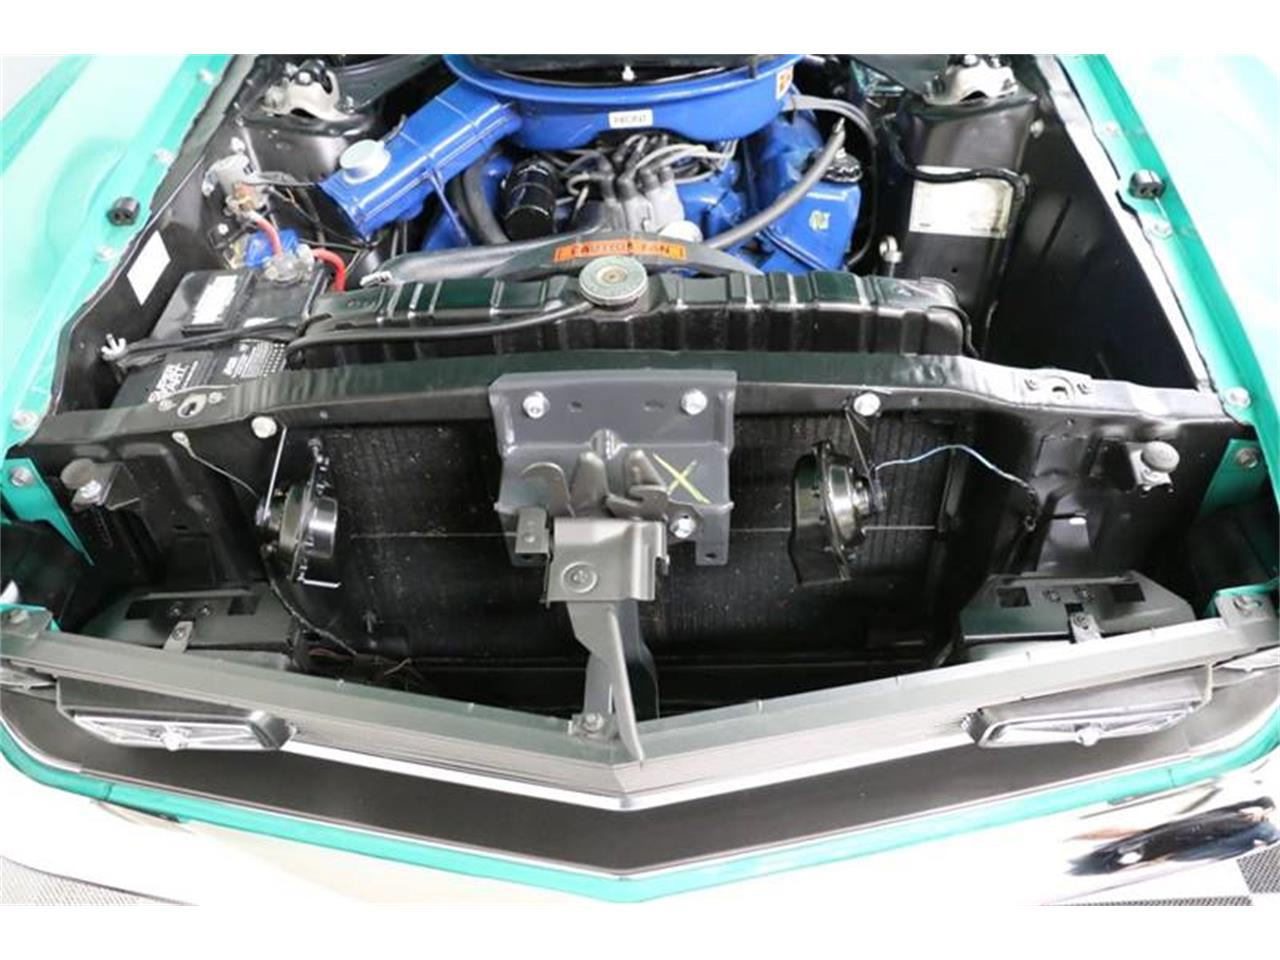 Large Picture of 1970 Ford Mustang located in Wisconsin - $49,995.00 - Q6NU